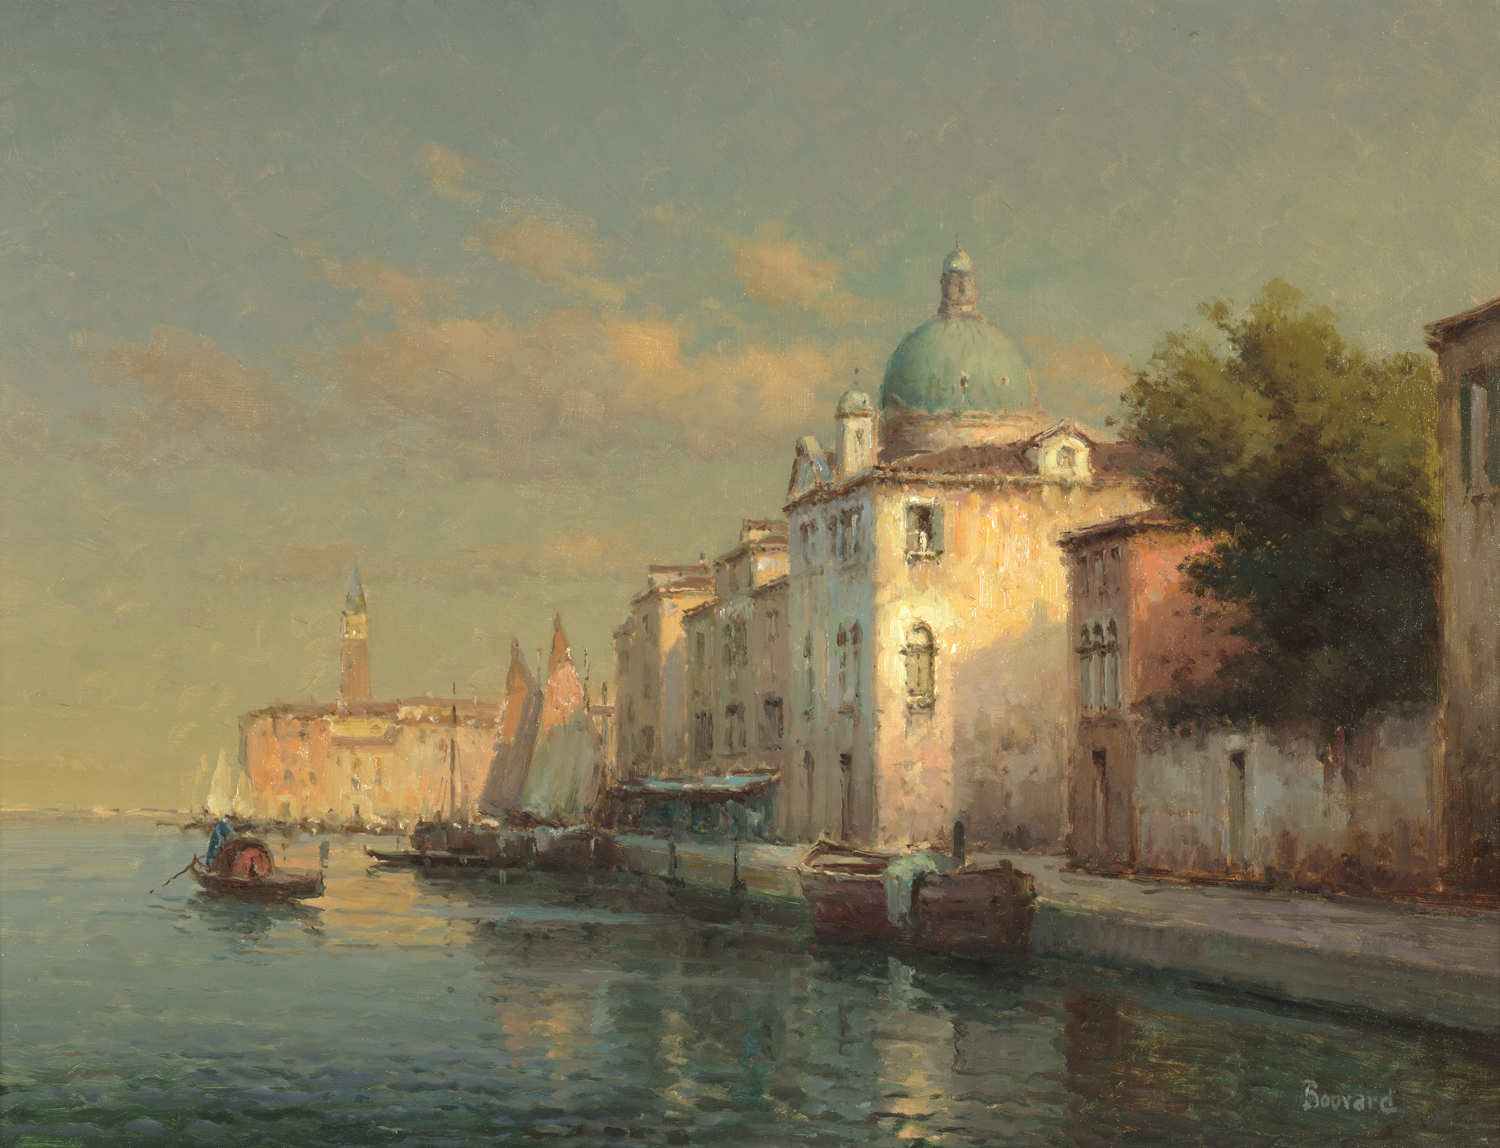 Antoine Bouvard (French 1913-1972) From the Lagoon